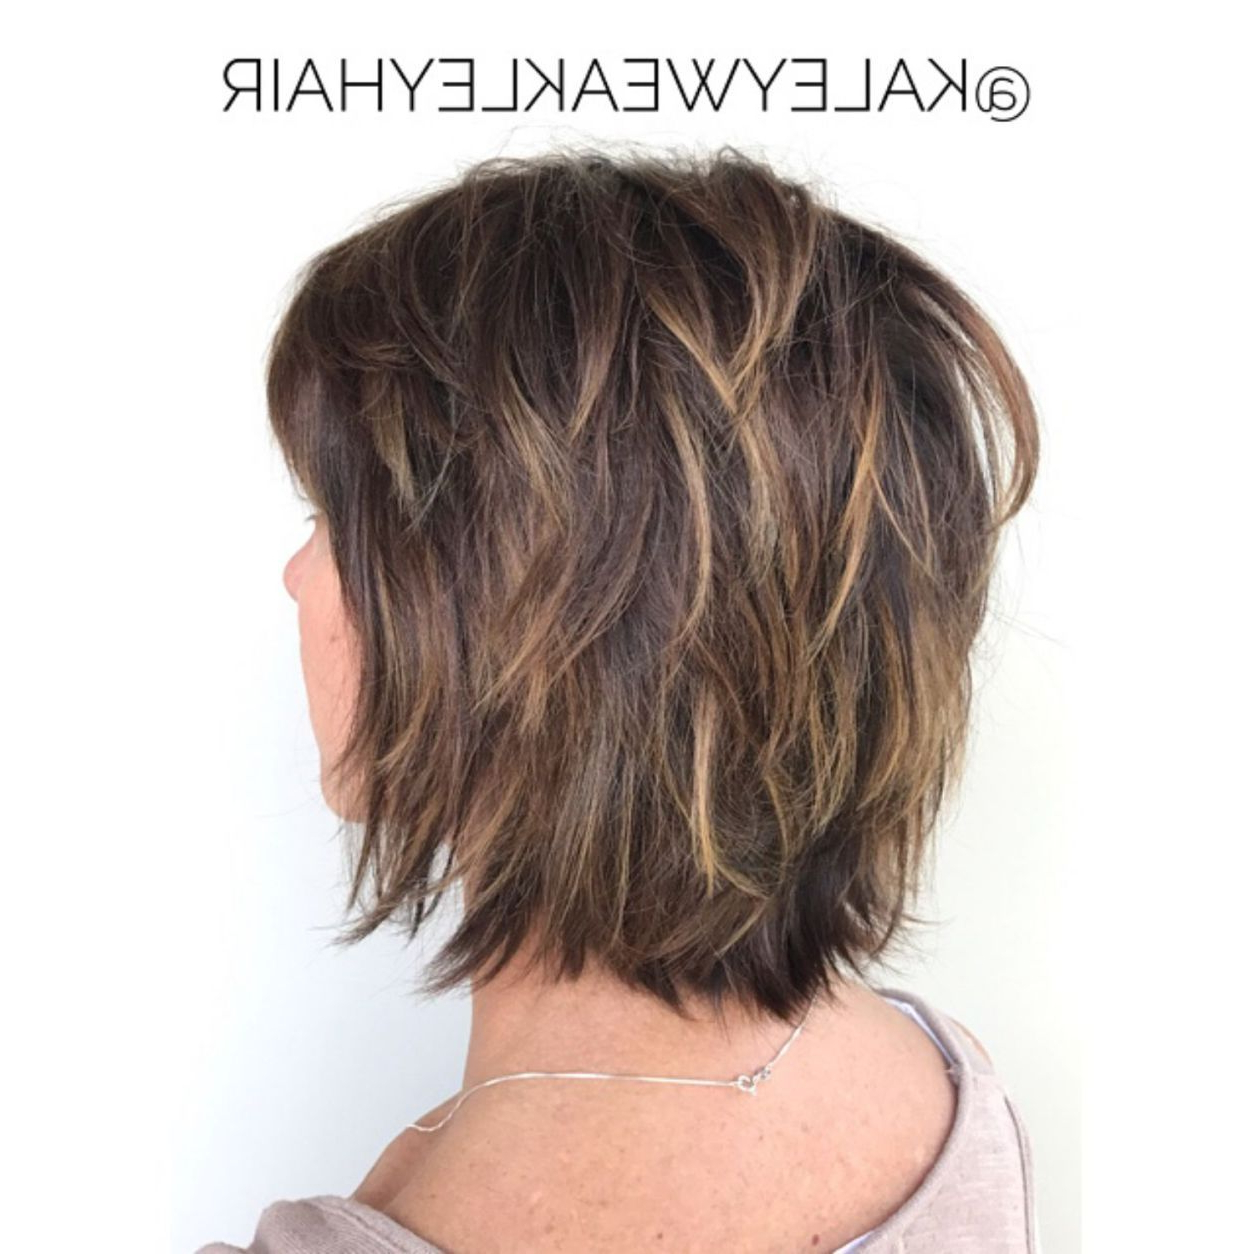 60 Short Shag Hairstyles That You Simply Can't Miss | Short With Regard To Short Highlighted Shaggy Haircuts (View 3 of 20)